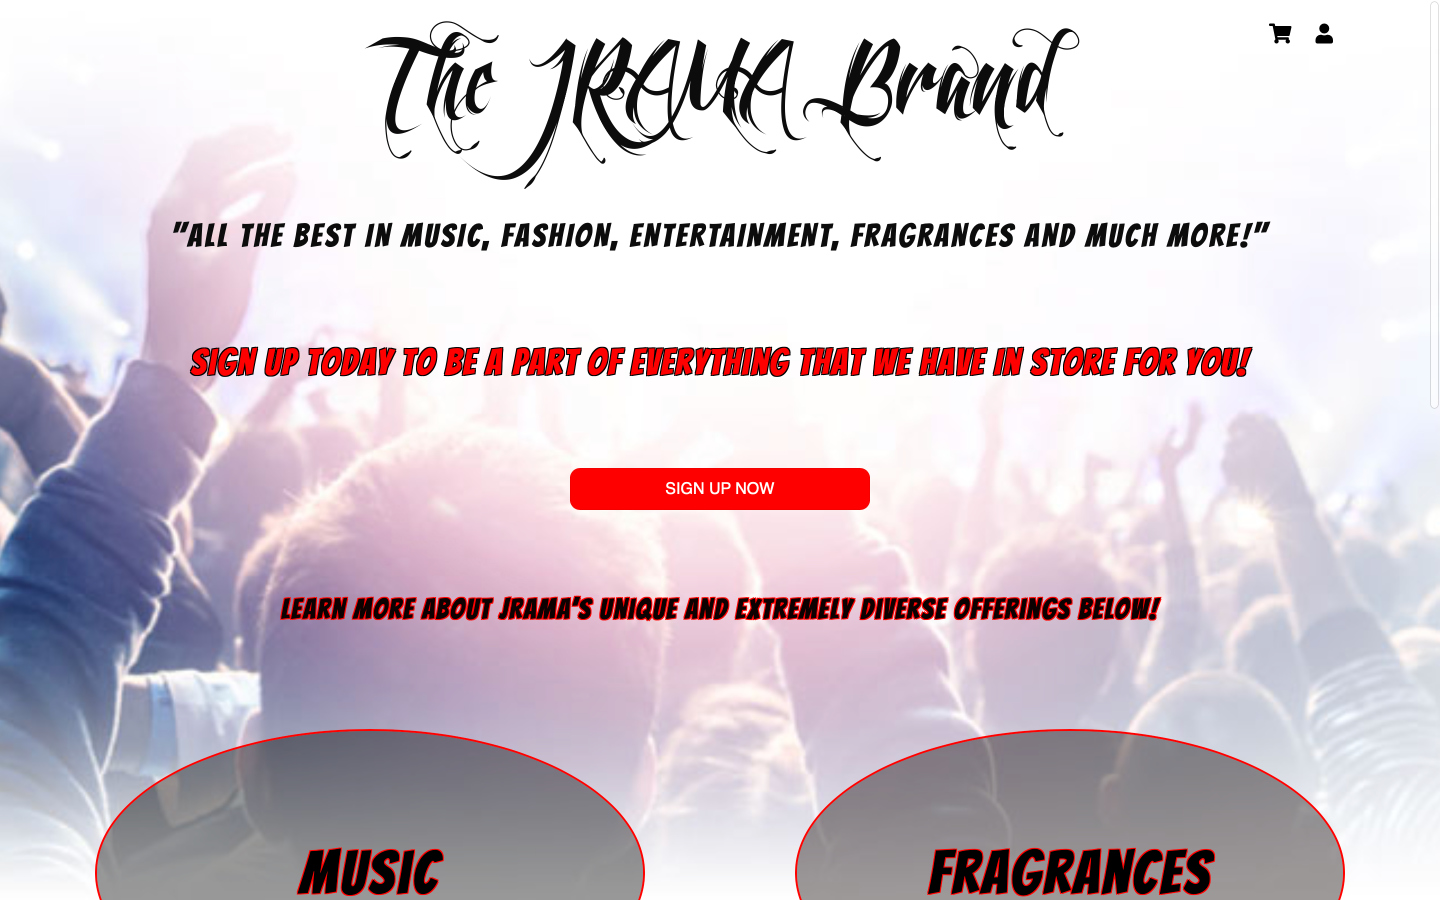 Website Hosting for The JRAMA Brand